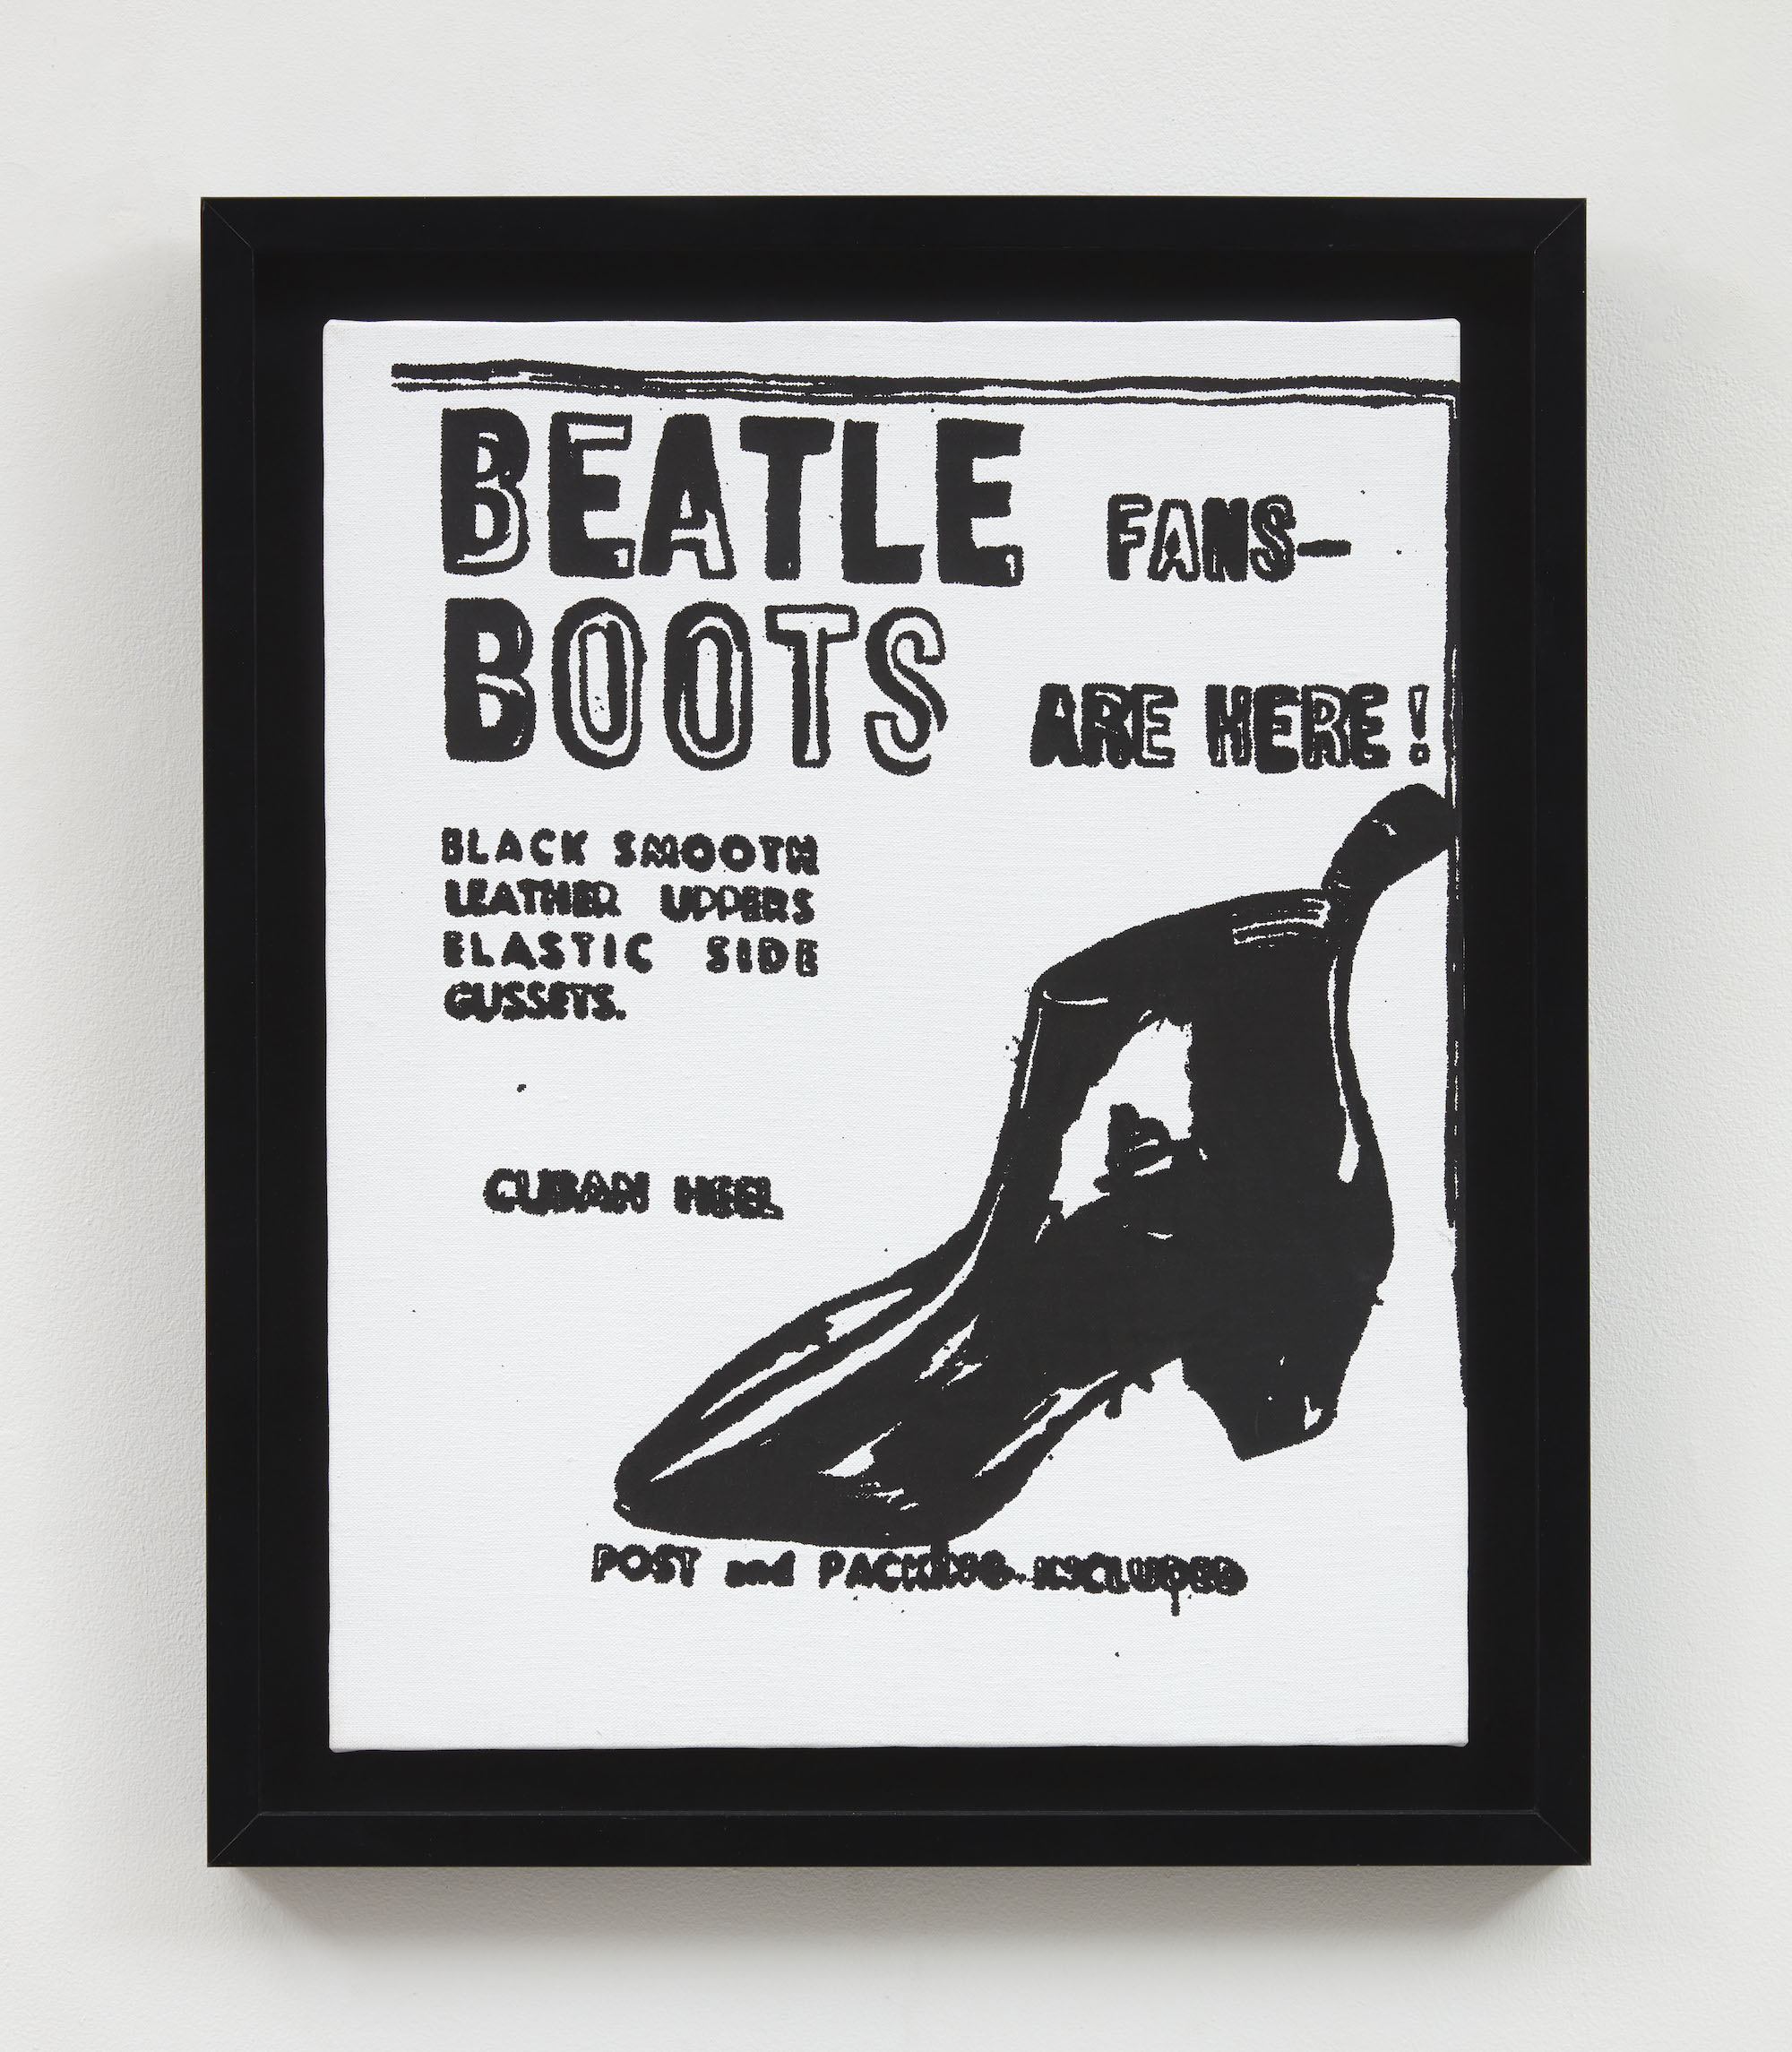 warhol_beatle-boots-frame